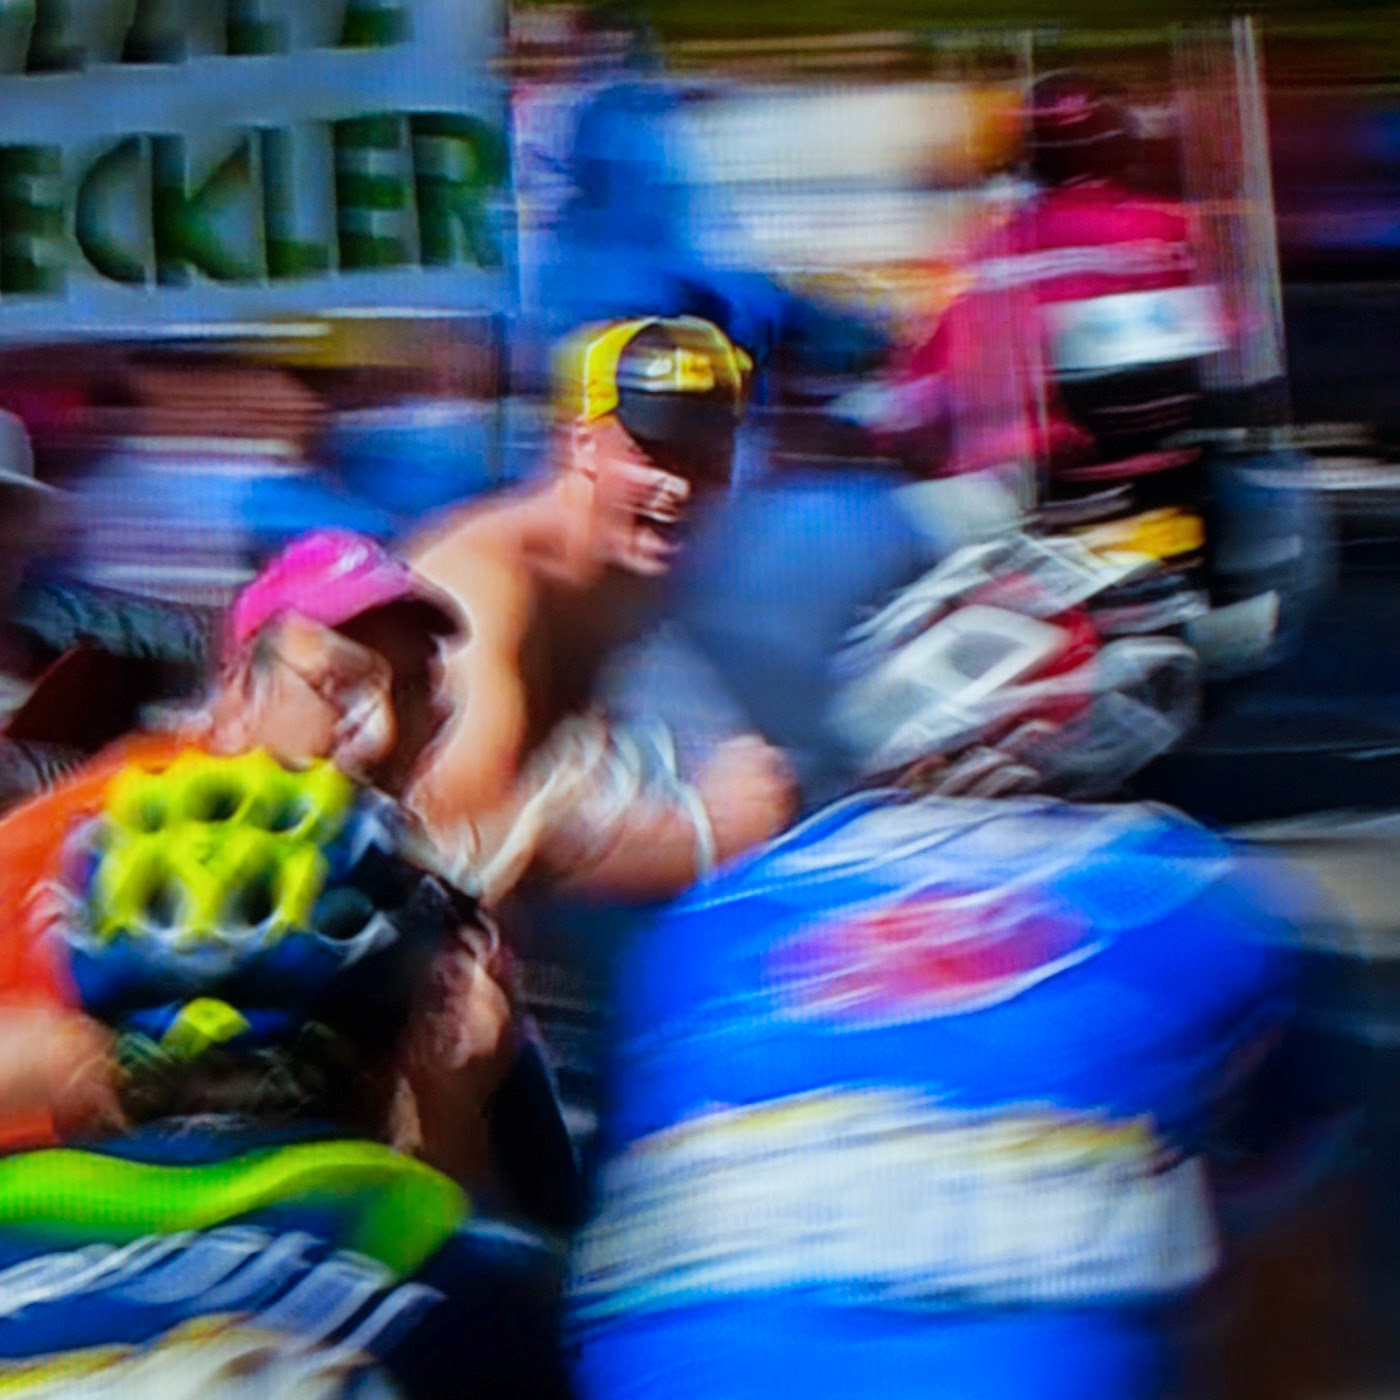 le tour, motion blur, blur, abstract, abstraction, tim macauley, photographic art, you won't see this at MoMA, appropriation, found imagery, le tour 2014, tv footage, portrait, crowd, crowd shot, spectators